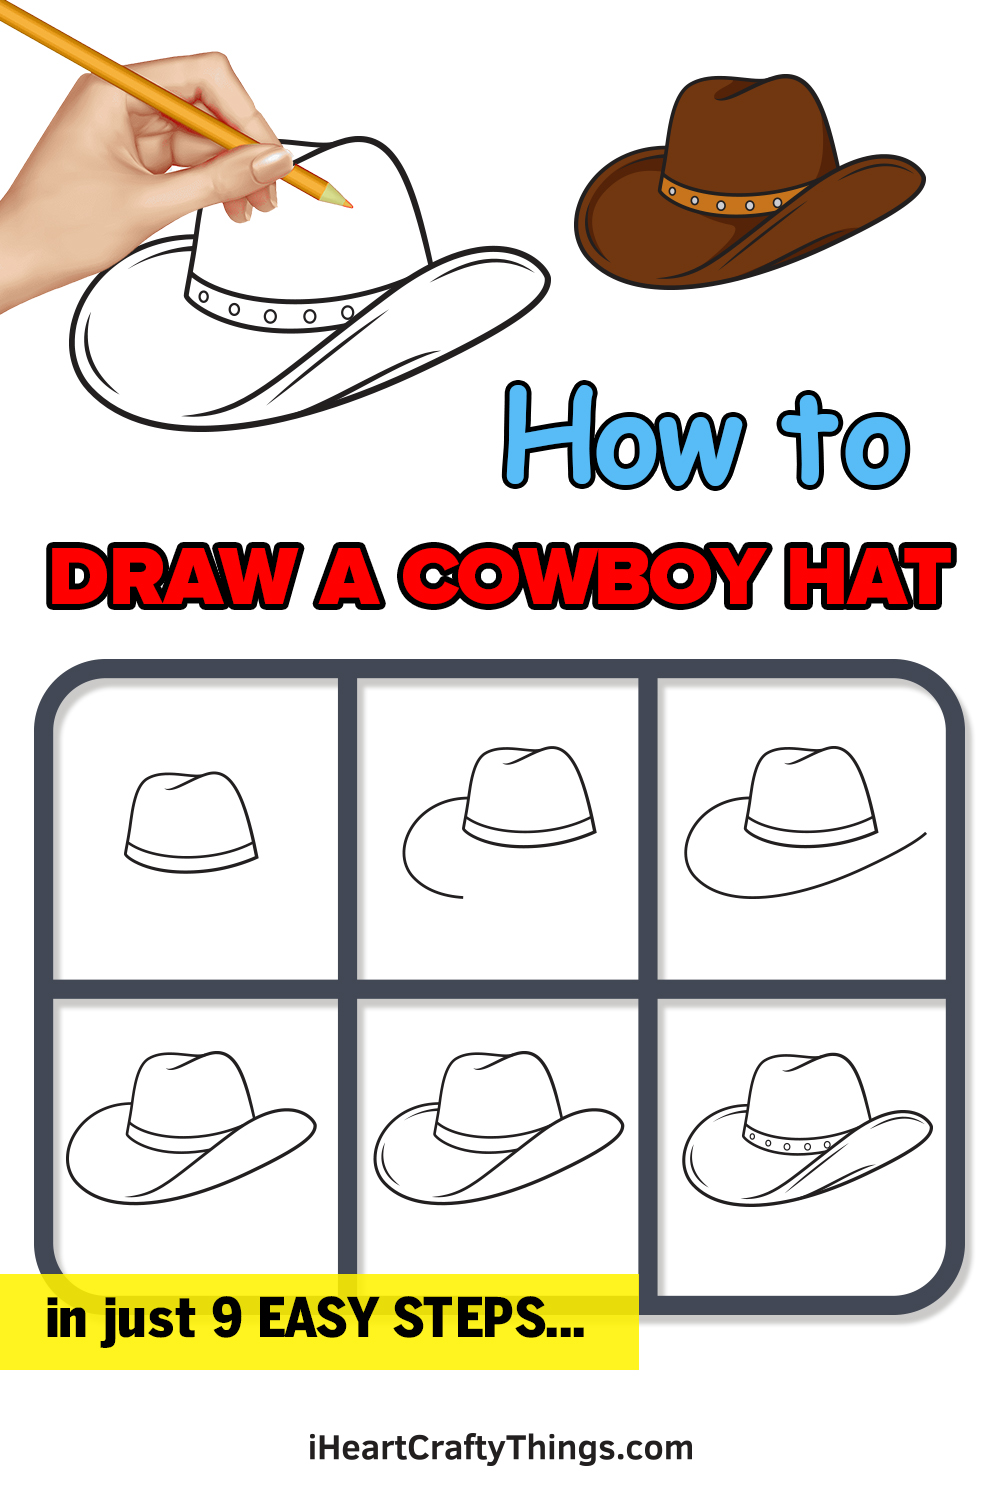 how to draw a cowboy hat in 9 easy steps